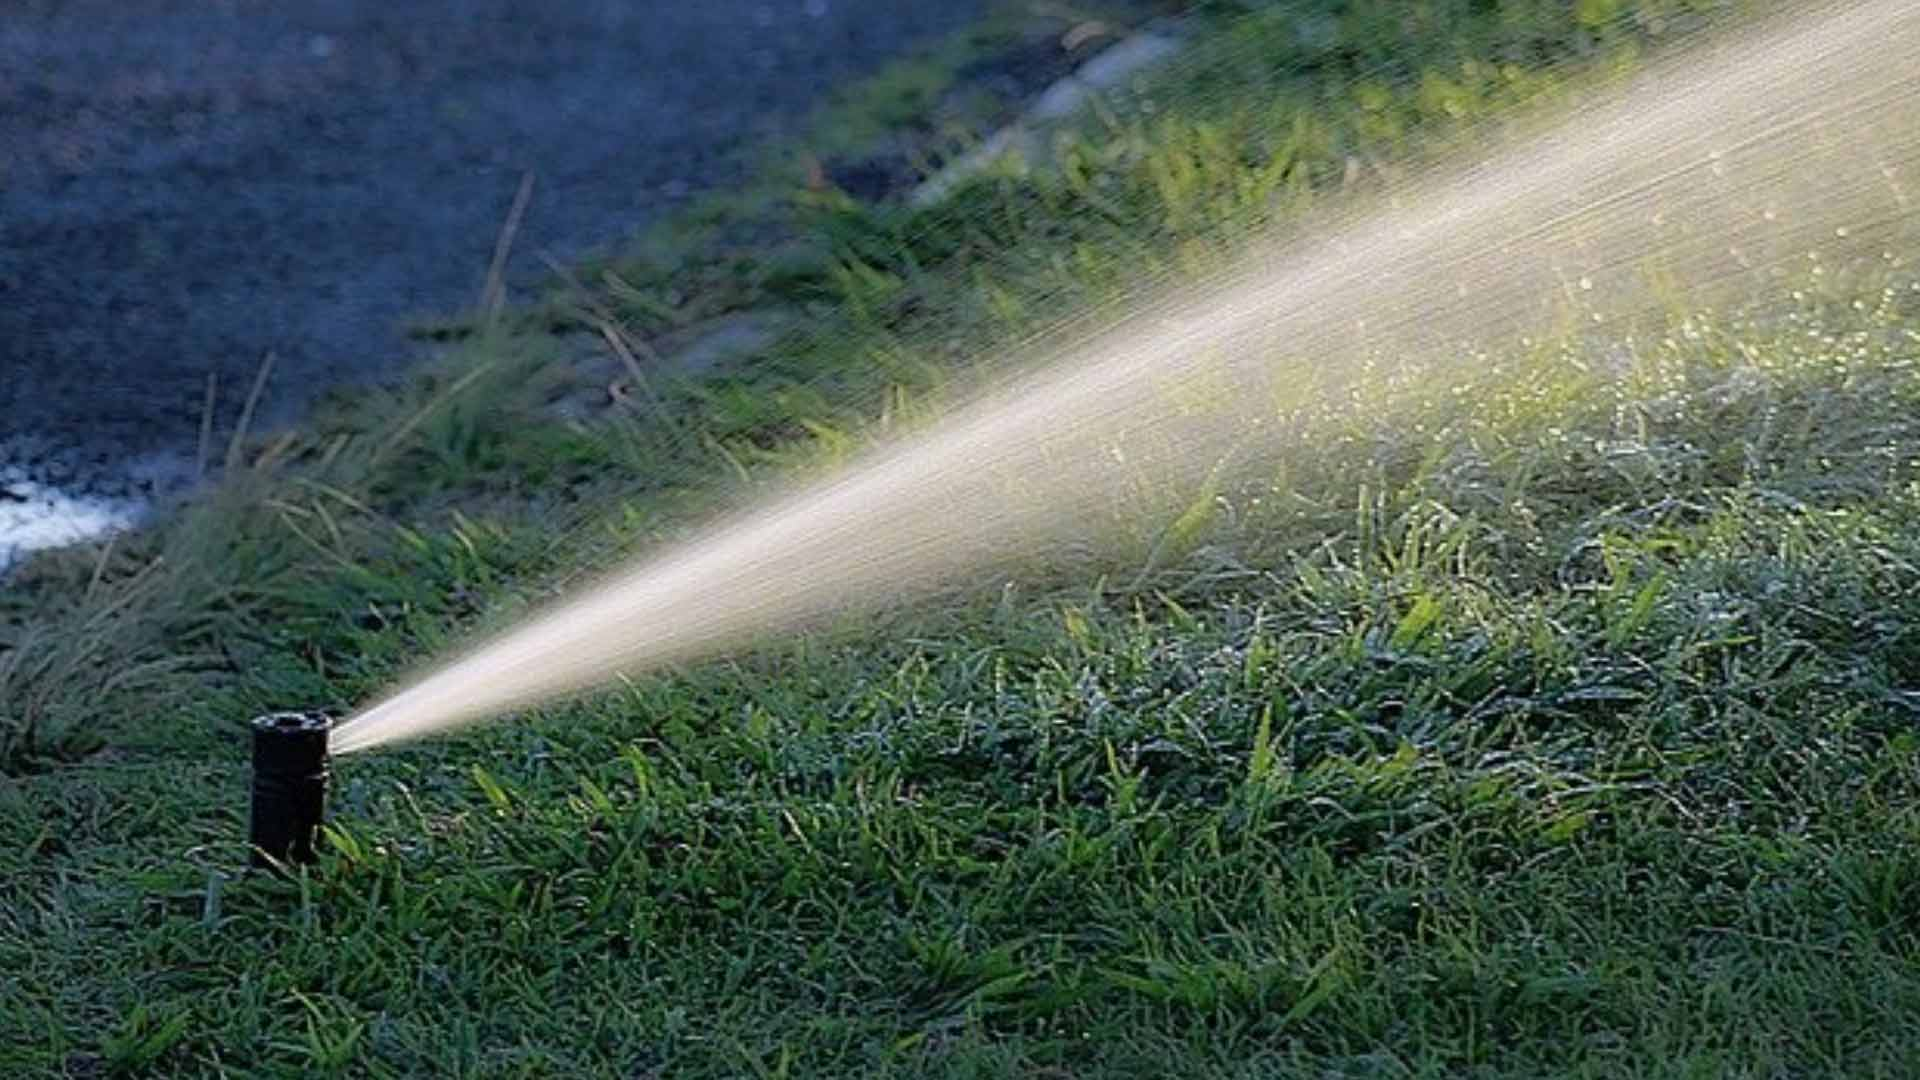 irrigation repair Lexon outdoor commercial landscaping and maintenance from Orlando, FL to Tampa, FL